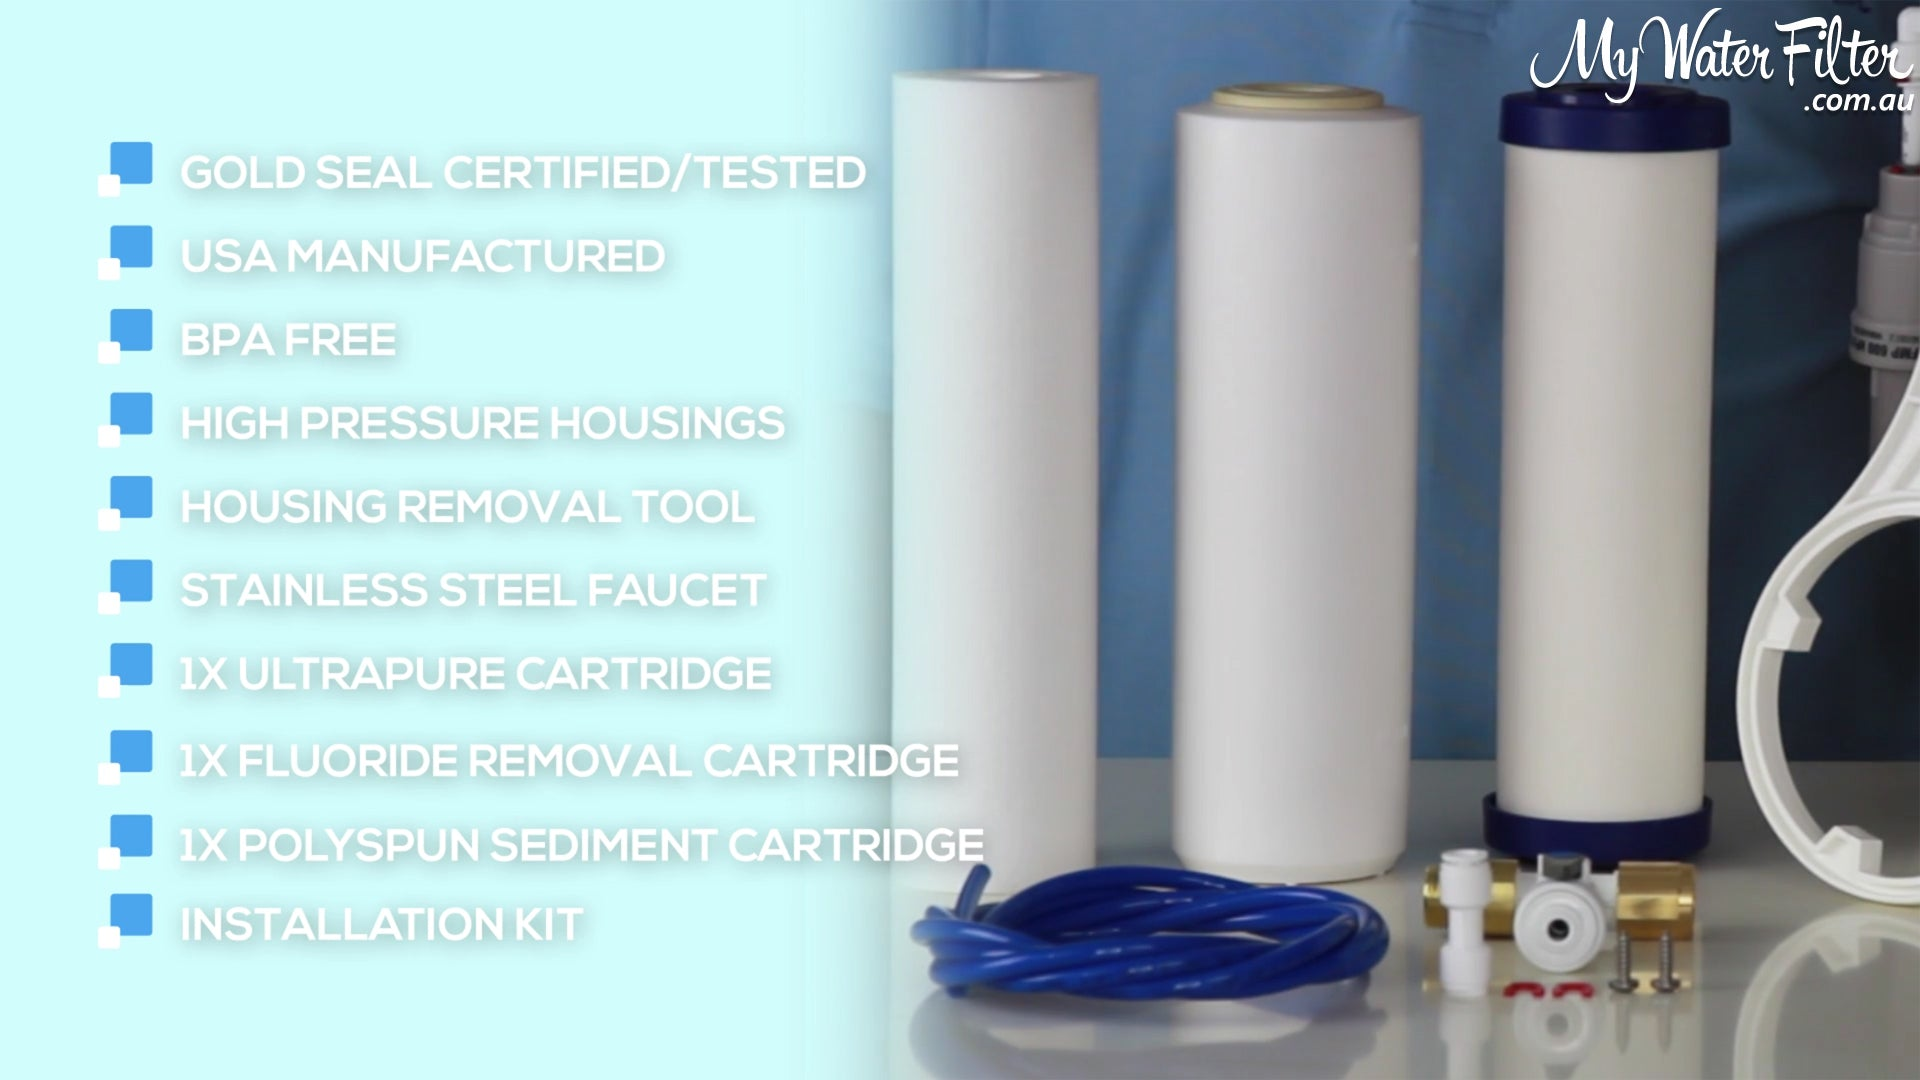 Ultrapure Ceramic Under Sink Water Filter Inclusions